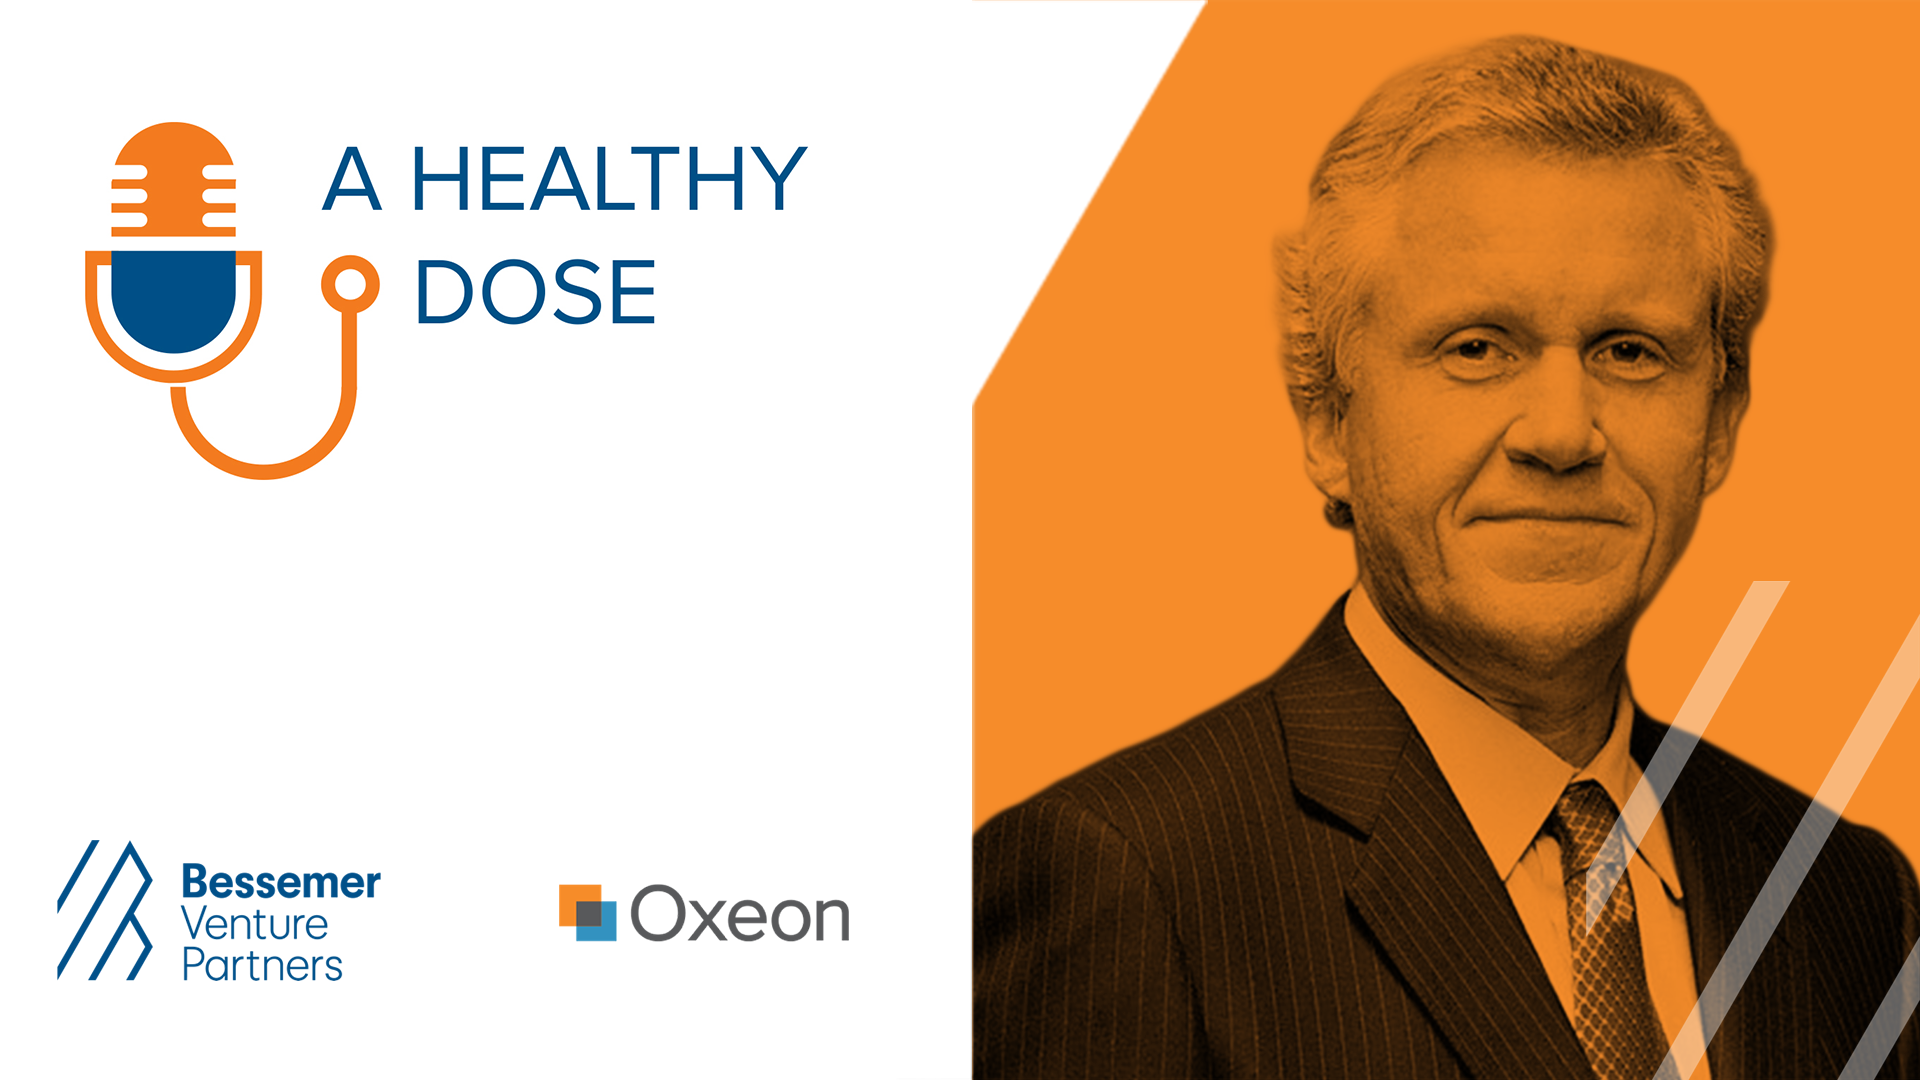 Jeff Immelt on A Healthy Dose